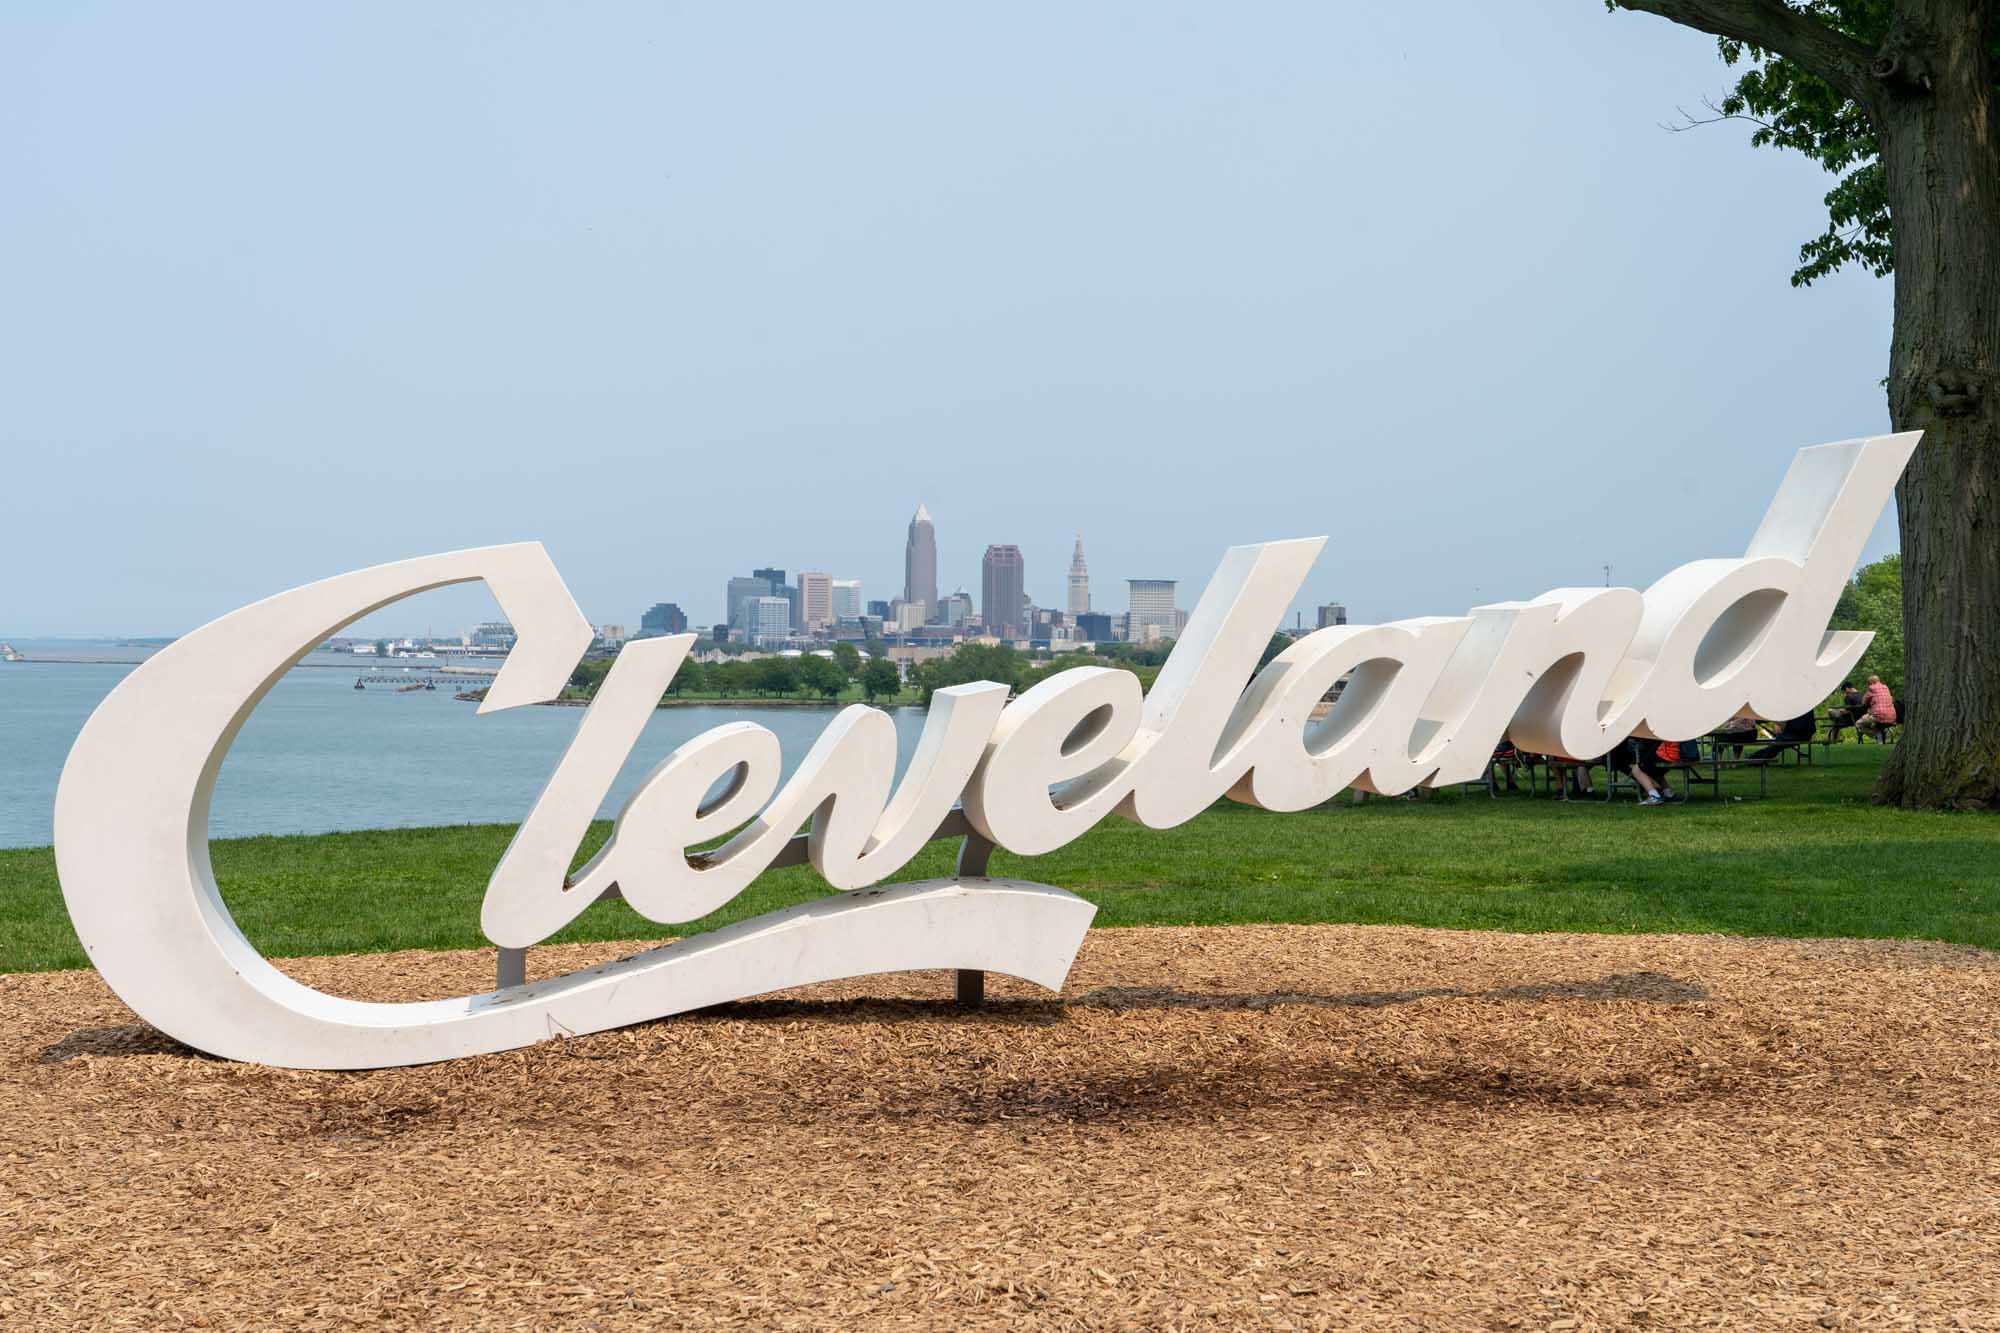 The Cleveland Script Signs and Where to Find Them